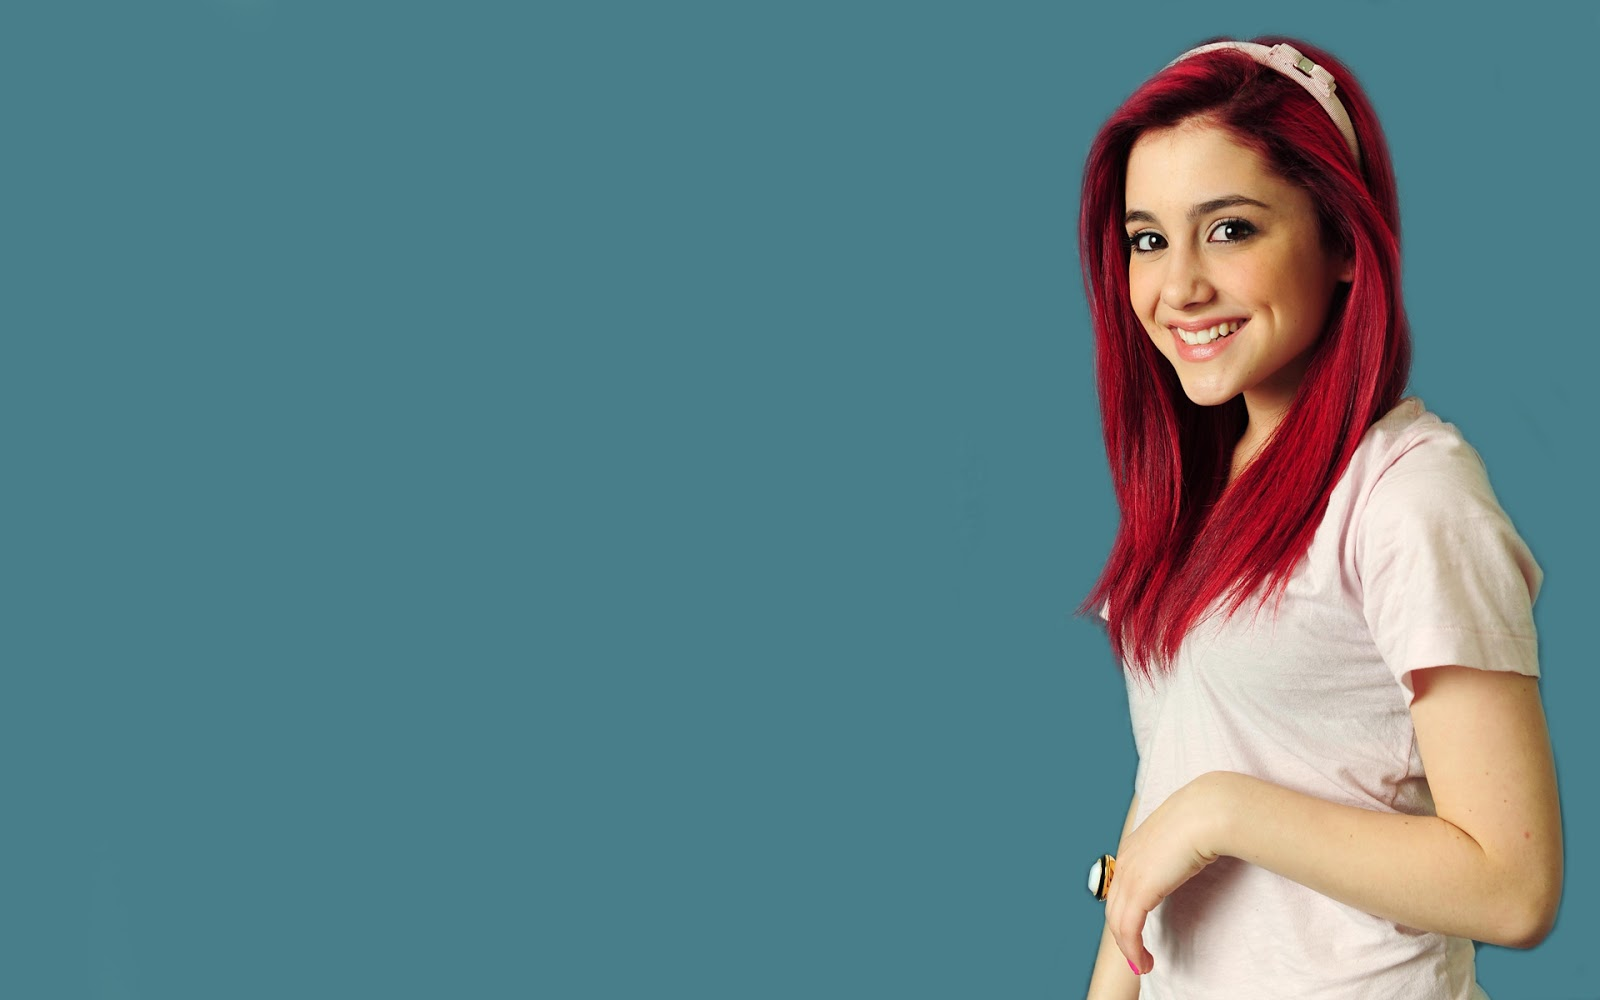 Ariana Grande Wallpapers - asimBaBa - 91.9KB